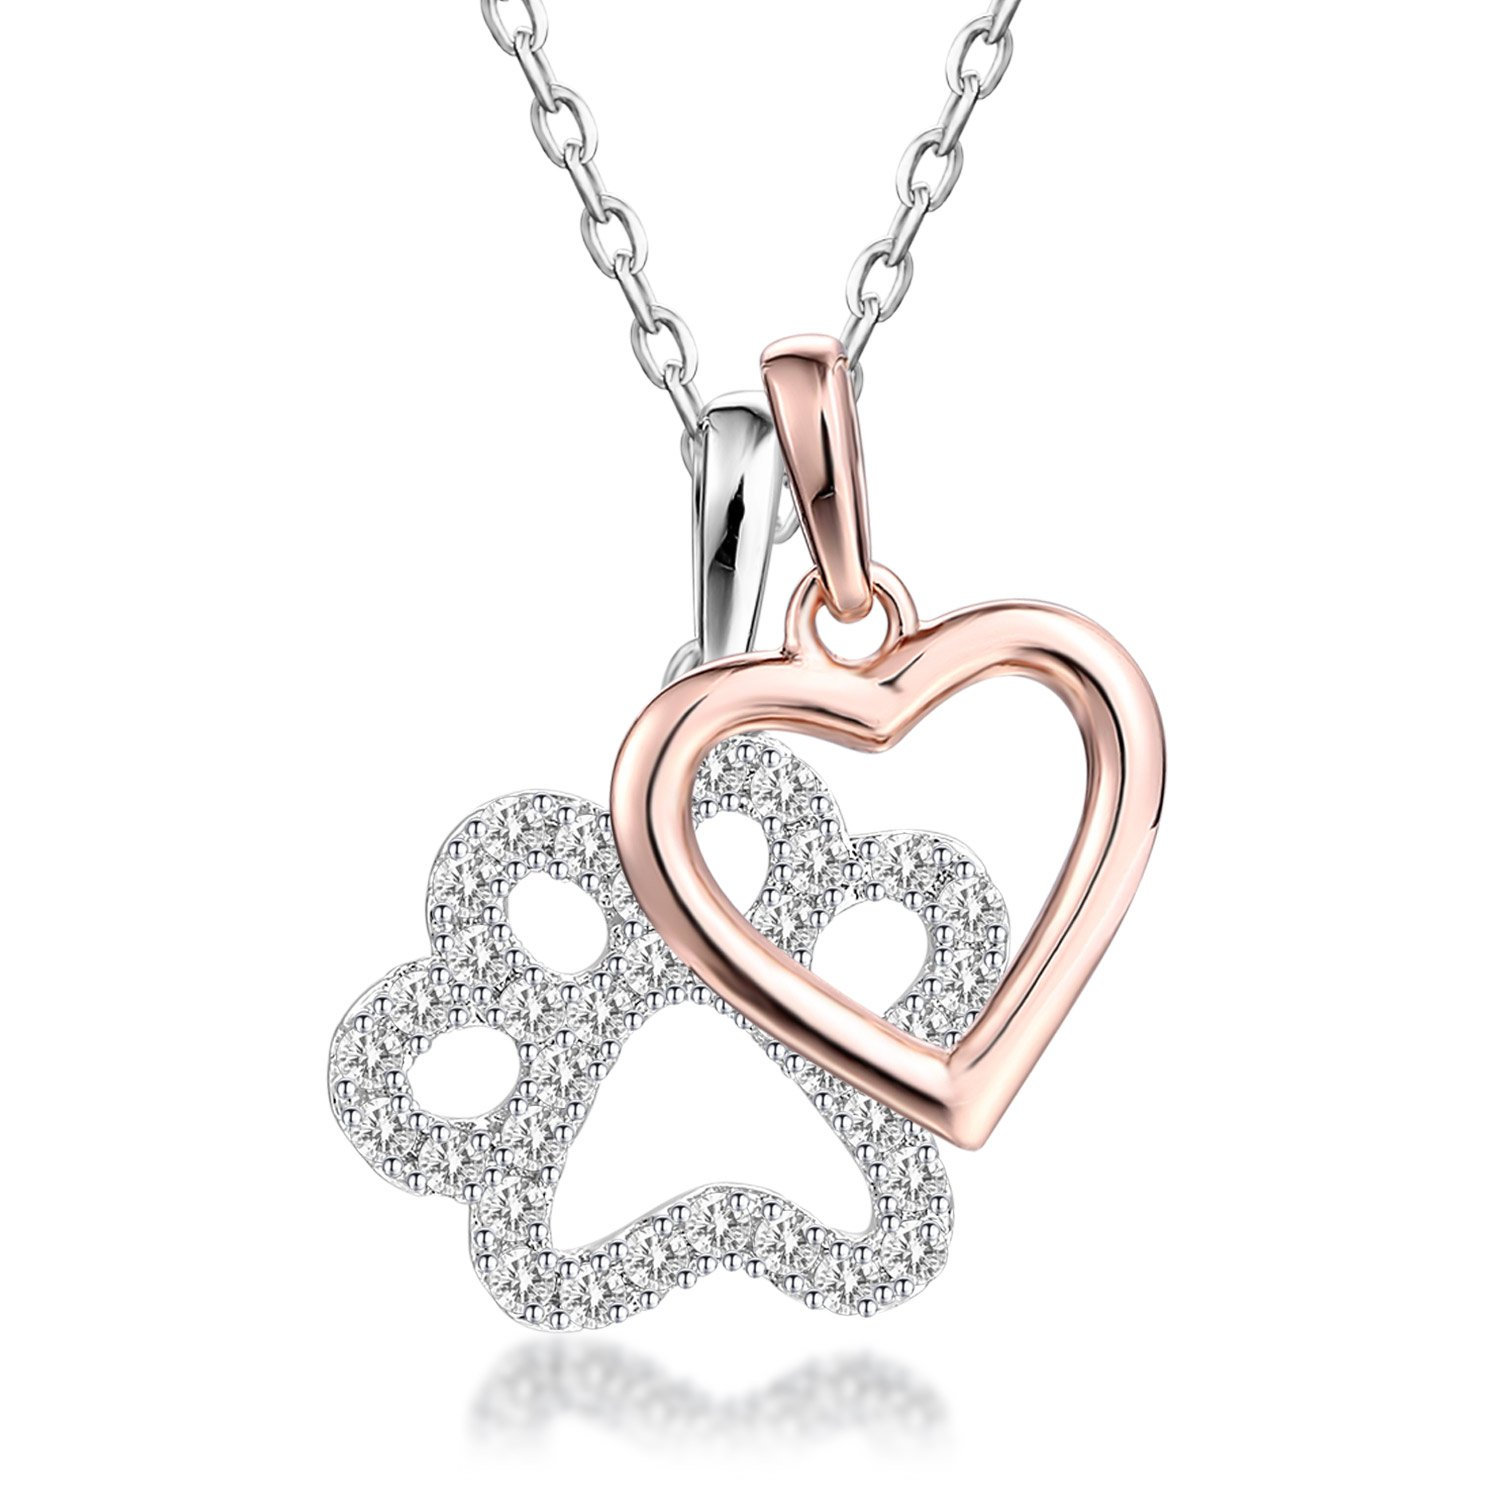 GuqiGuli Sterling Silver Good Luck Dog Paw with Rose Gold Heart Charms Pendant Necklace, 18''